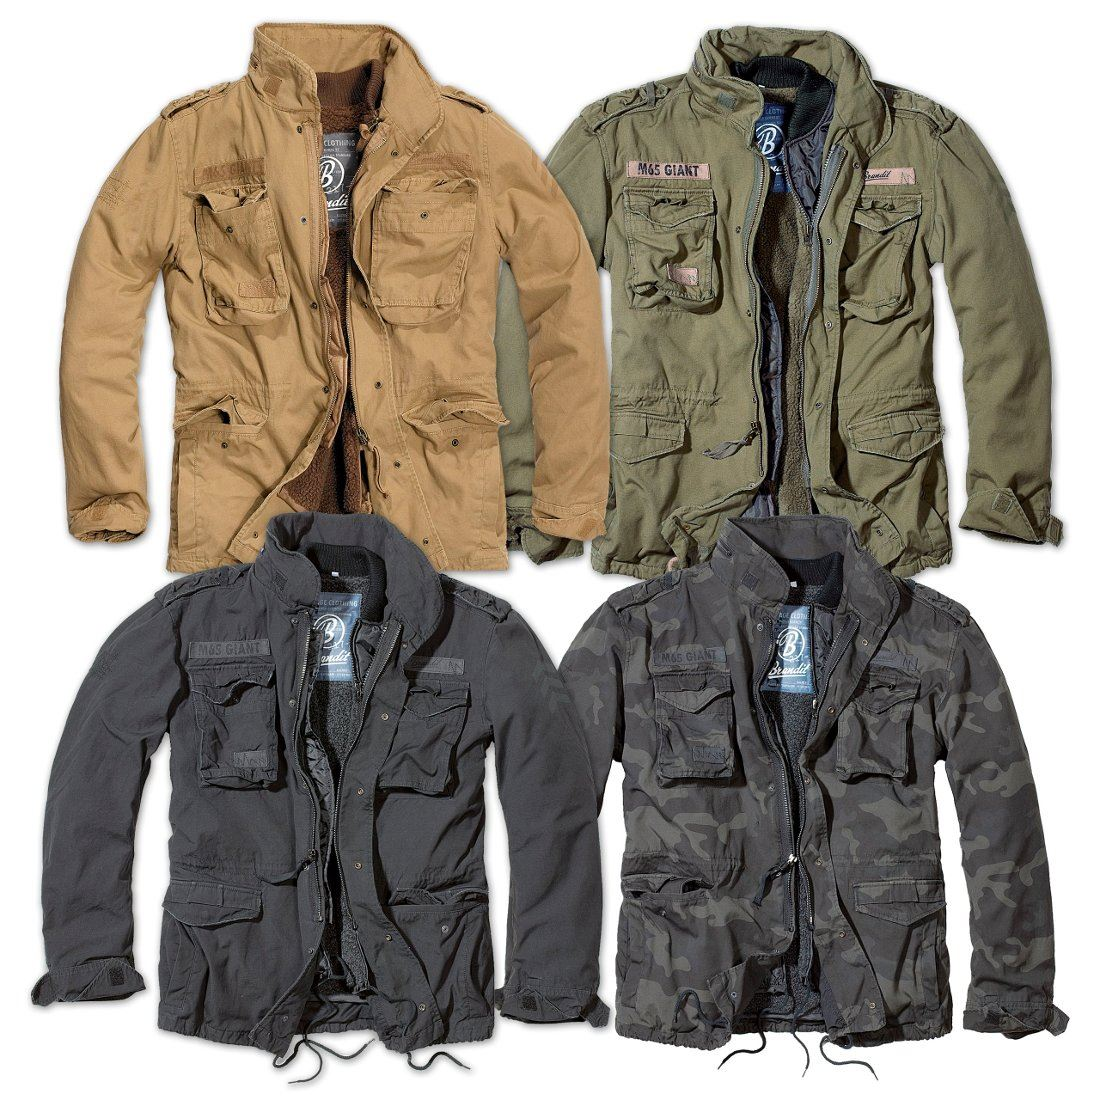 Details about BRANDIT M65 GIANT MENS MILITARY PARKA US ARMY JACKET WINTER WARM ZIP OUT LINER